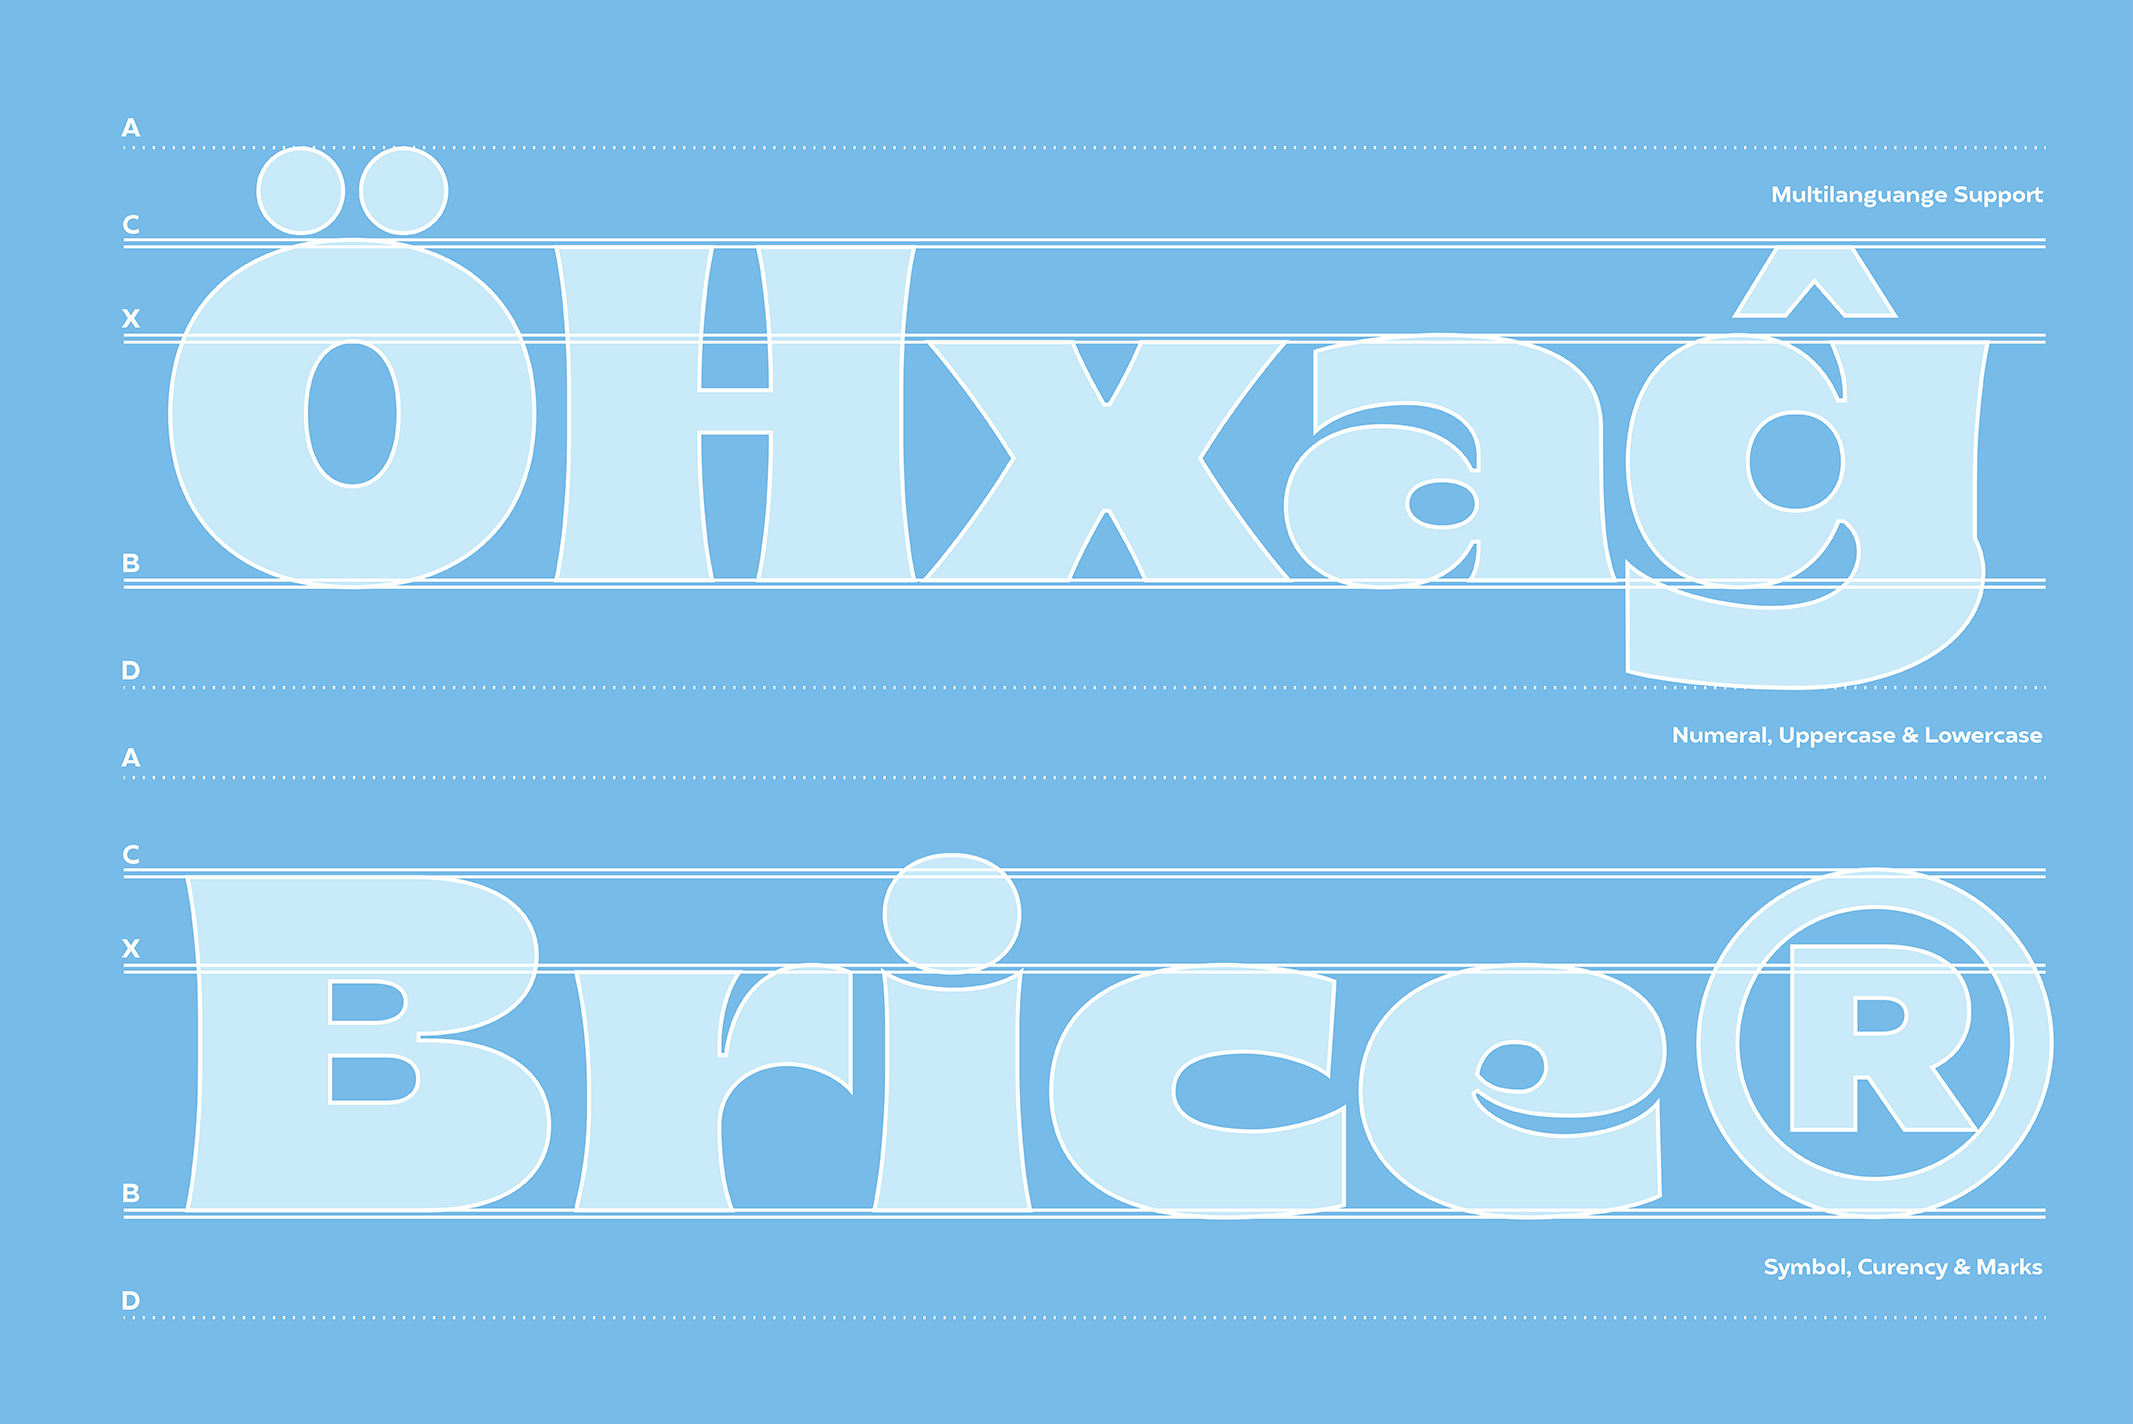 Brice is a new typeface designed by Cahya Sofyan for www.typeverything.com